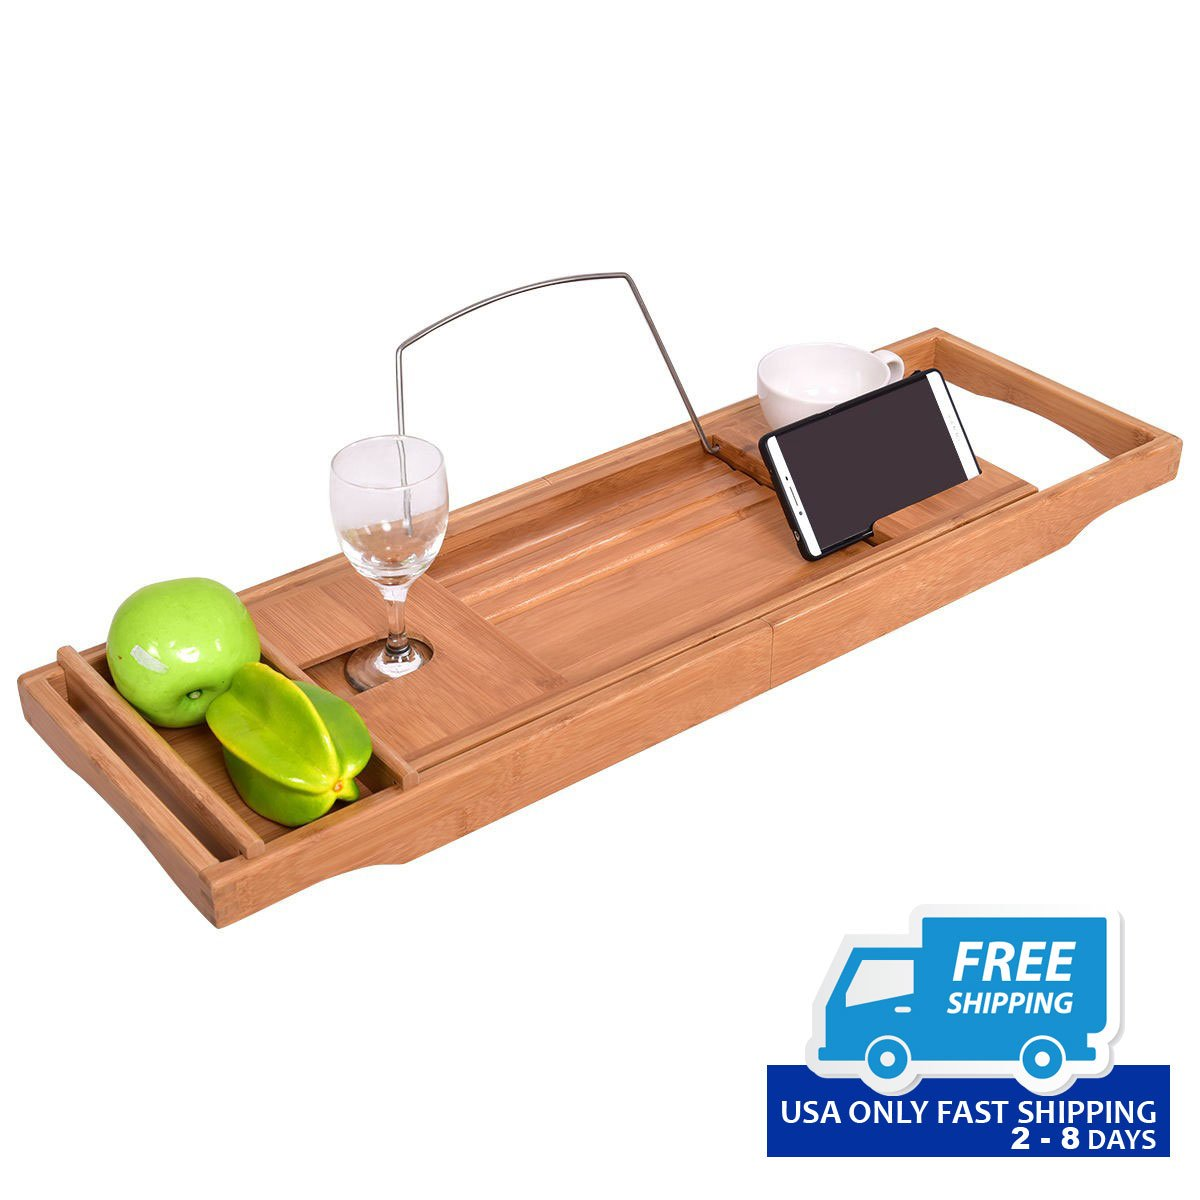 Adjustable Bamboo Bathtub Tray with Book Holder – By Choice Products